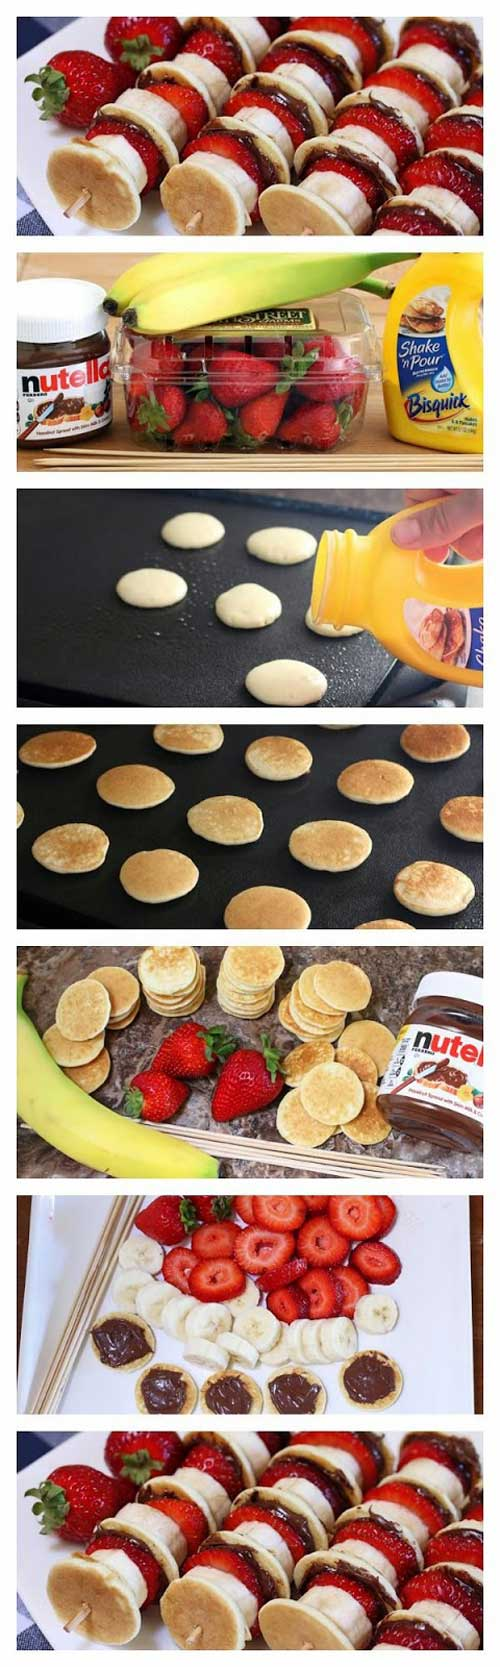 Recipe for Nutella Mini Pancake Kabobs - Soft and pillowy pancakes slathered with Nutella and layered on skewers with fresh strawberries and banana.